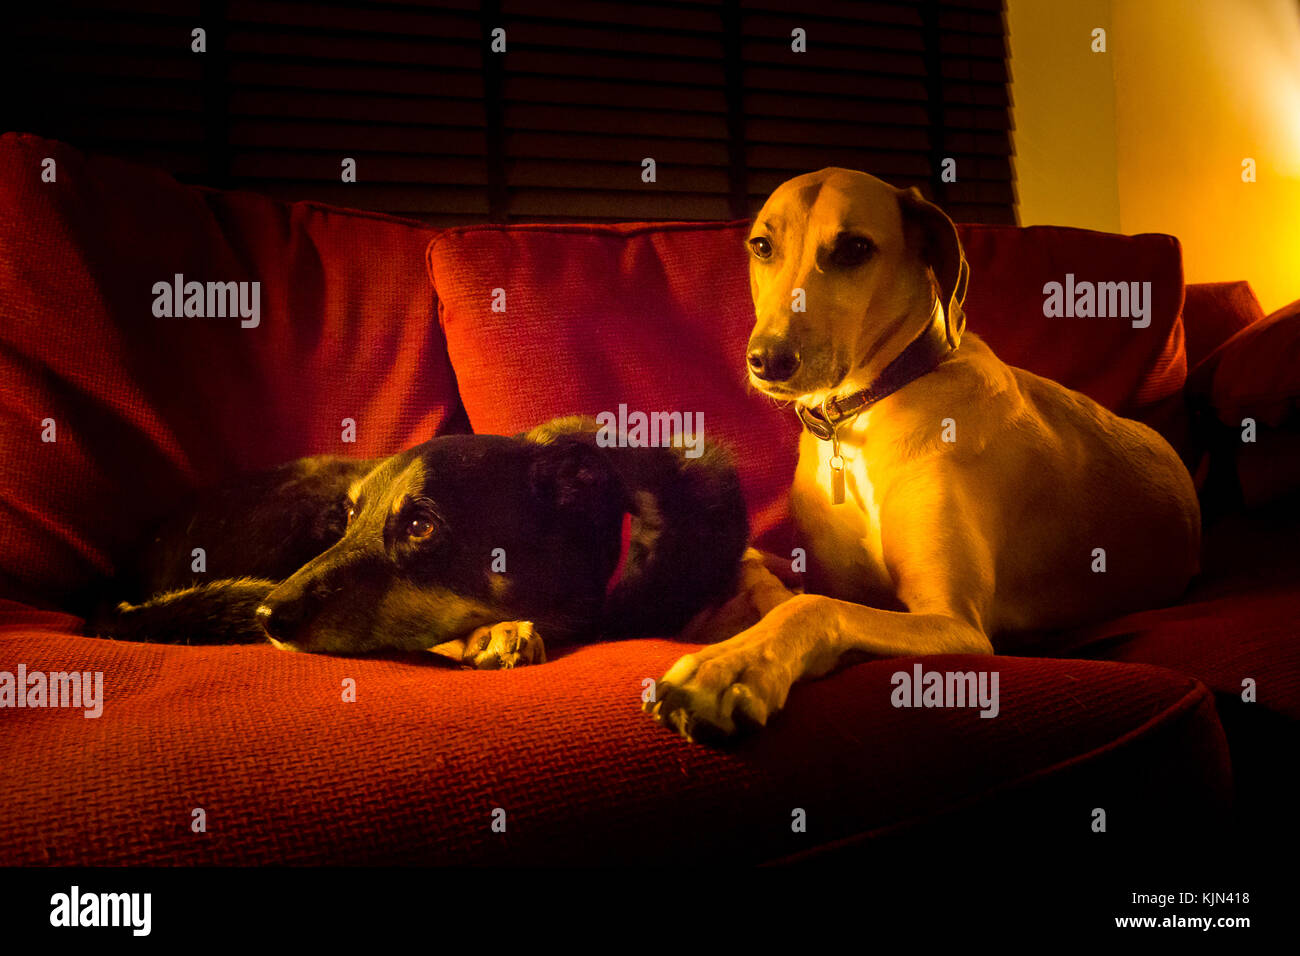 Two dogs lying on a red sofa - Stock Image